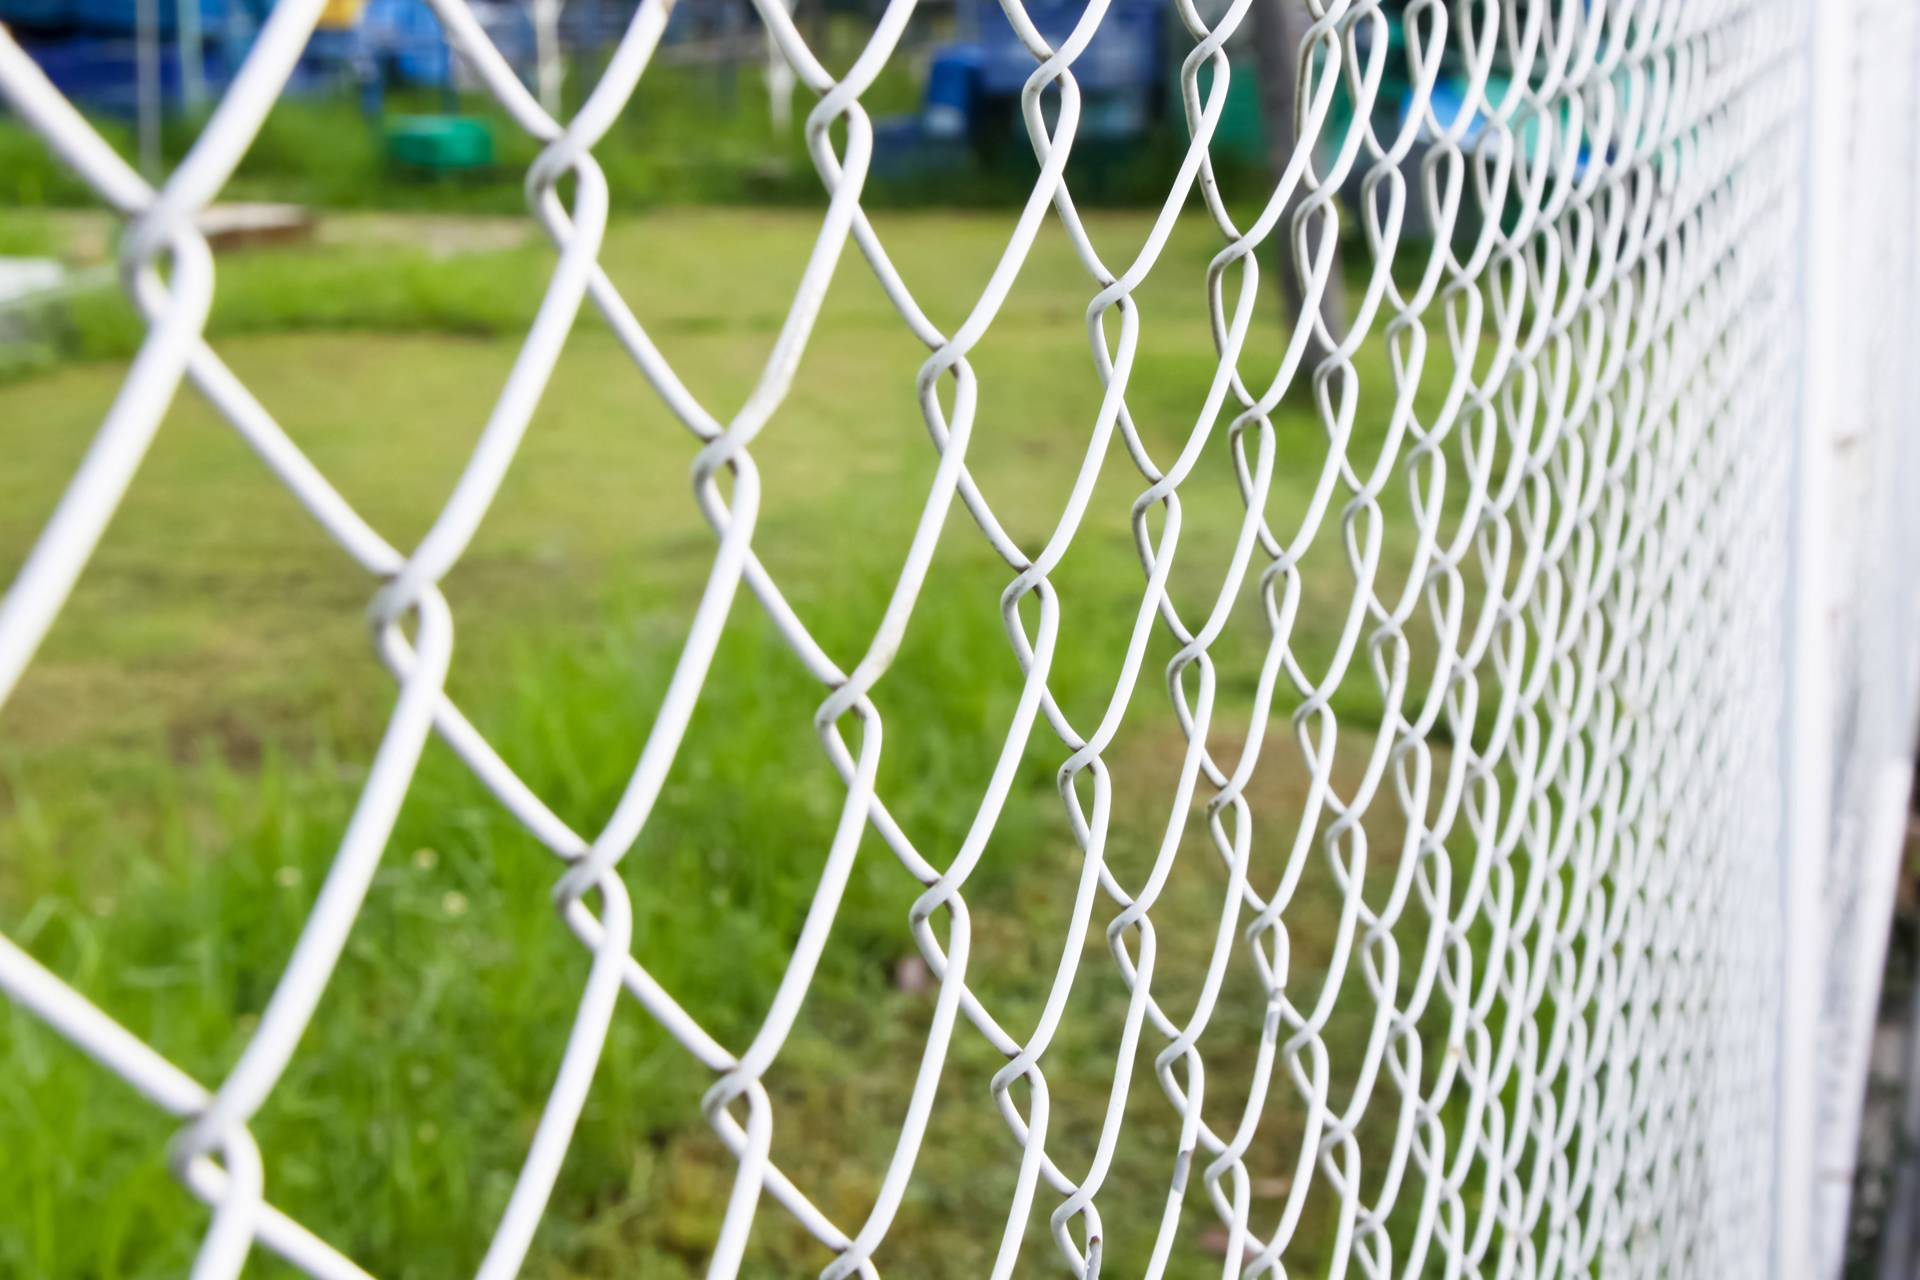 Chain Link Security Fences – Sports Residential & mercial Barriers